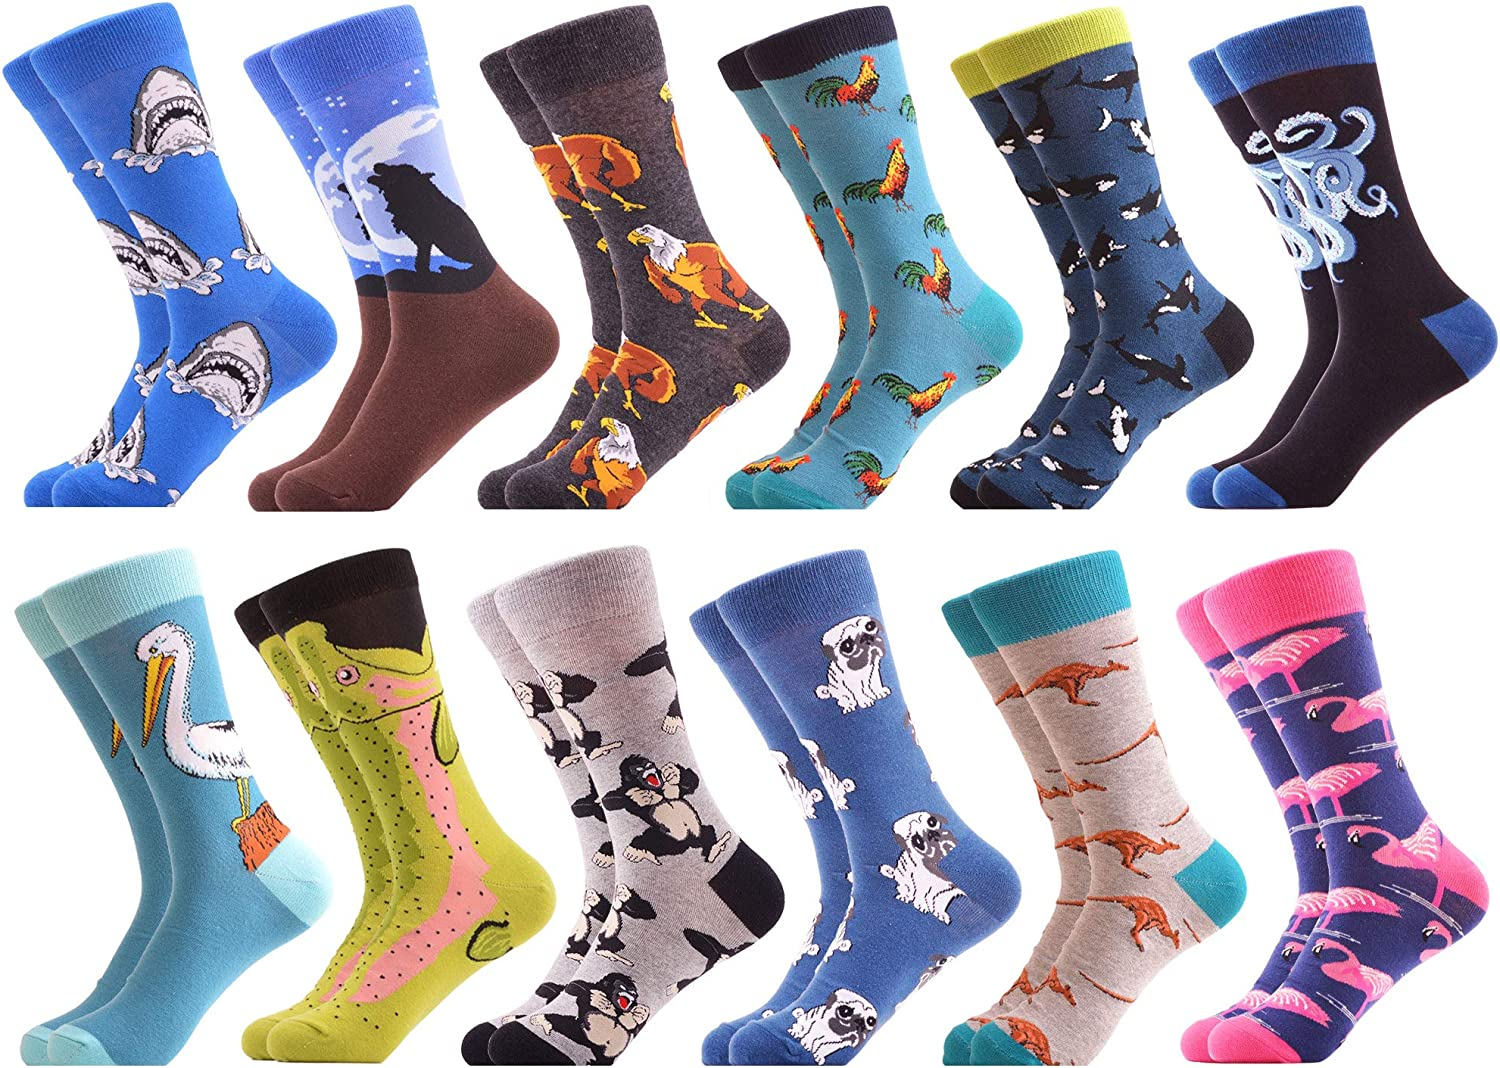 WeciBor Men's Colorful Funny Novelty Casual Combed Cotton Crew Socks Gift